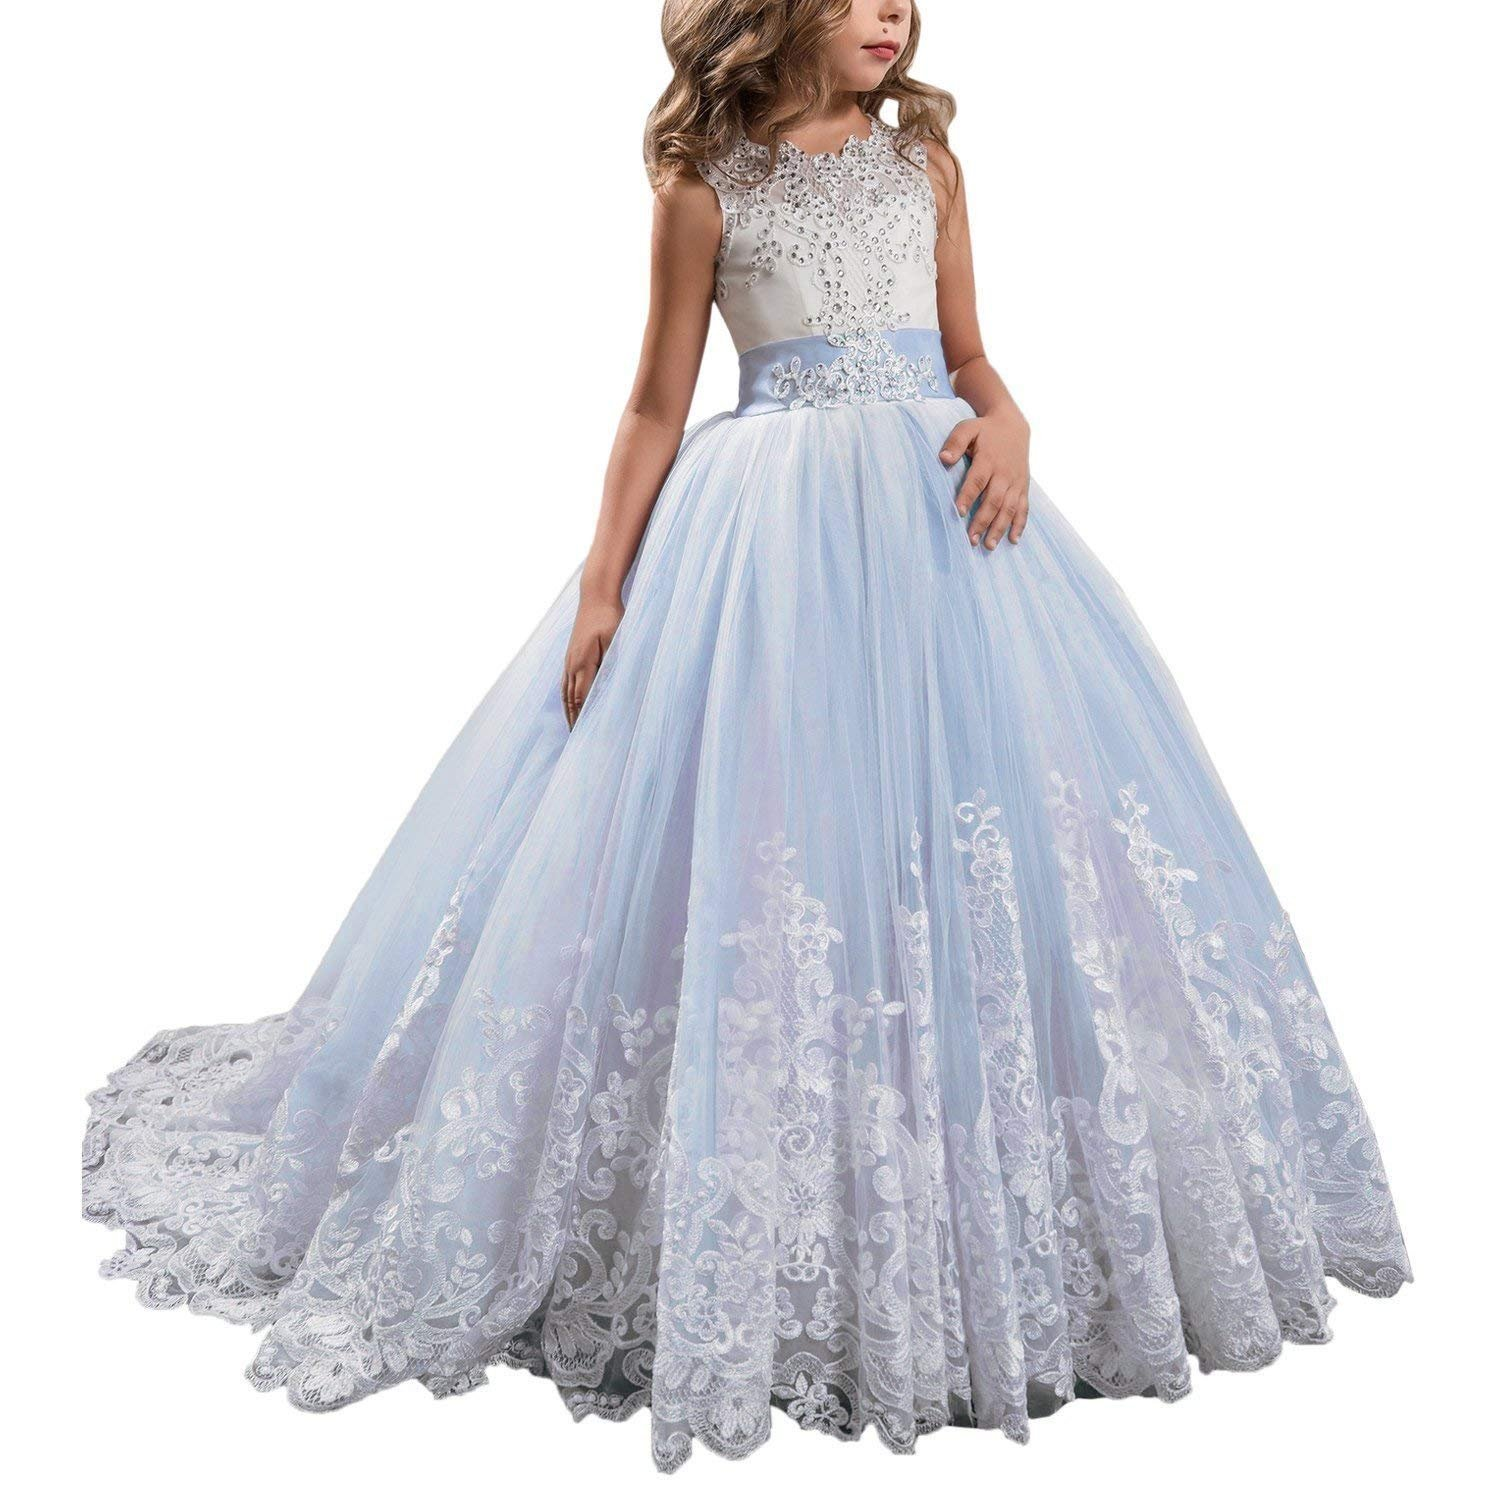 APXPF Long Tulle Flower Girl Dress Pageant Dresses Kids Prom Puffy Ball Gown